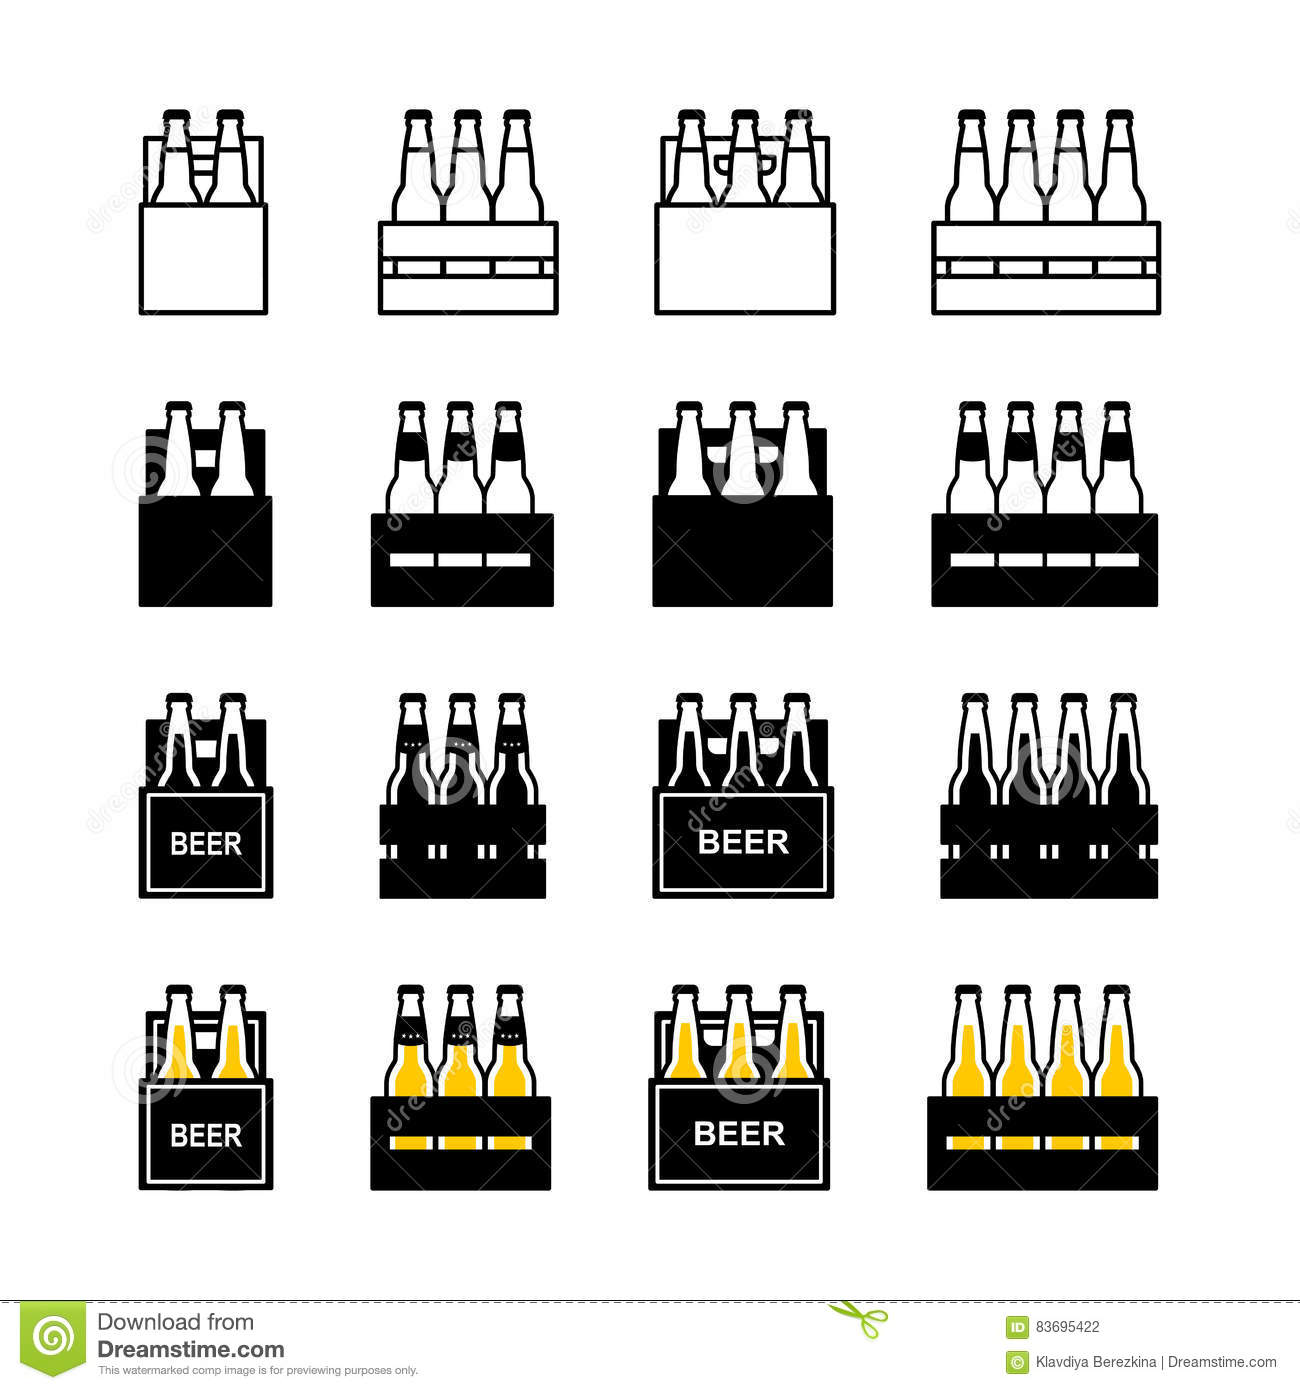 Beer box icon set stock vector. Illustration of silhouette